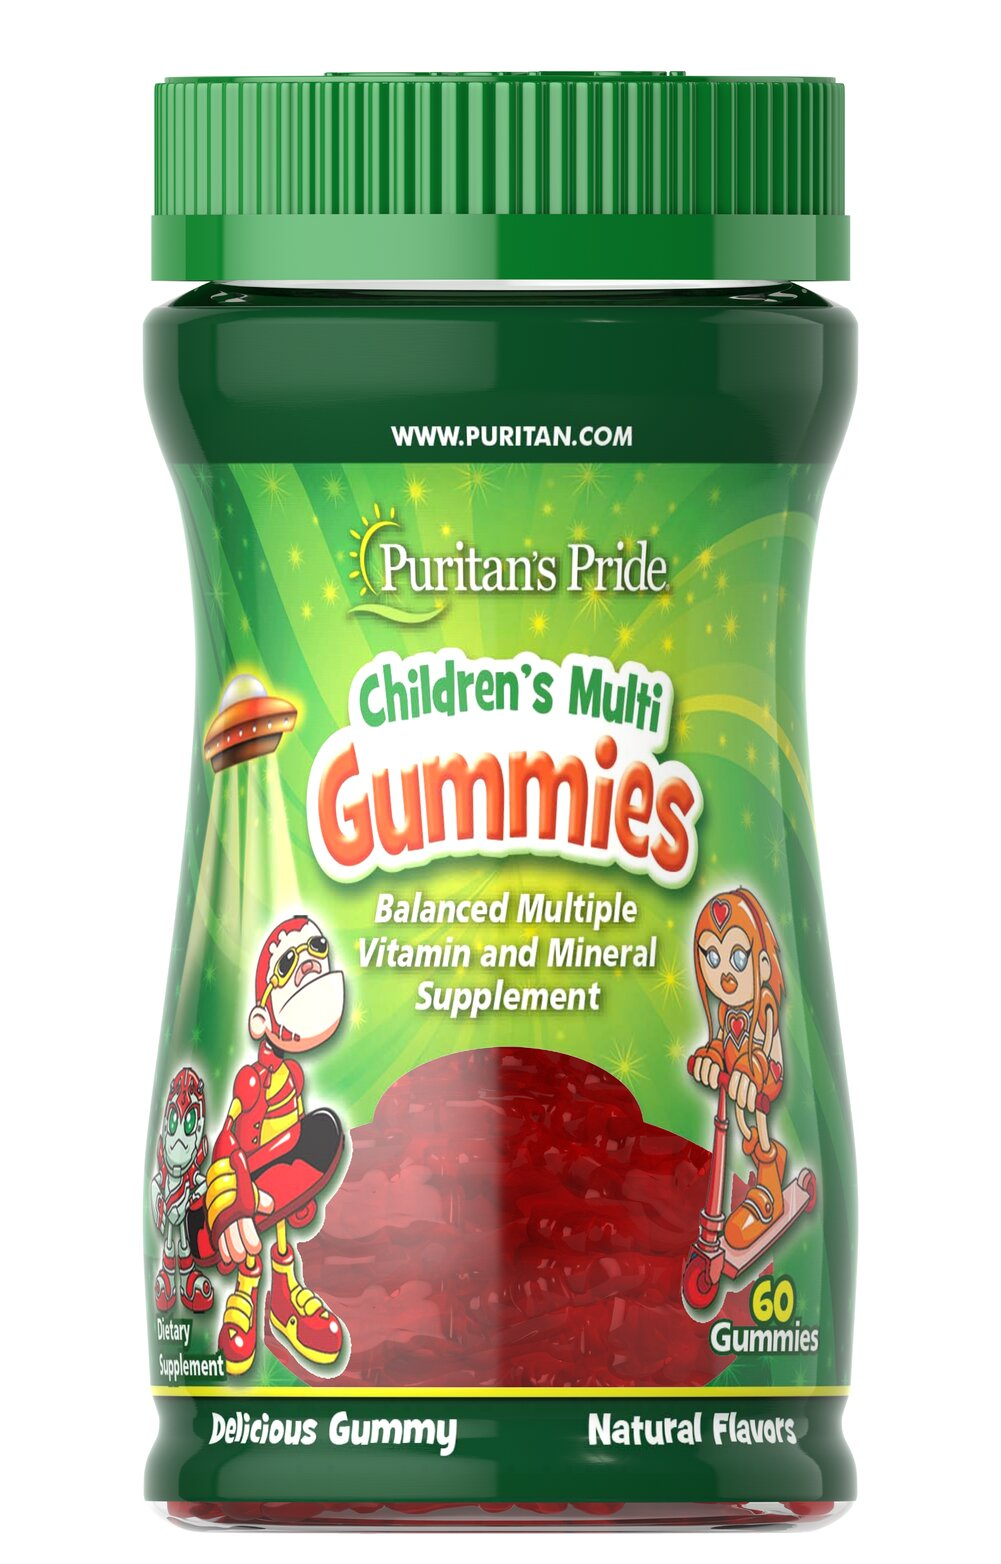 Children's Multivitamins & Minerals Gummies  60 Gummies  $10.99